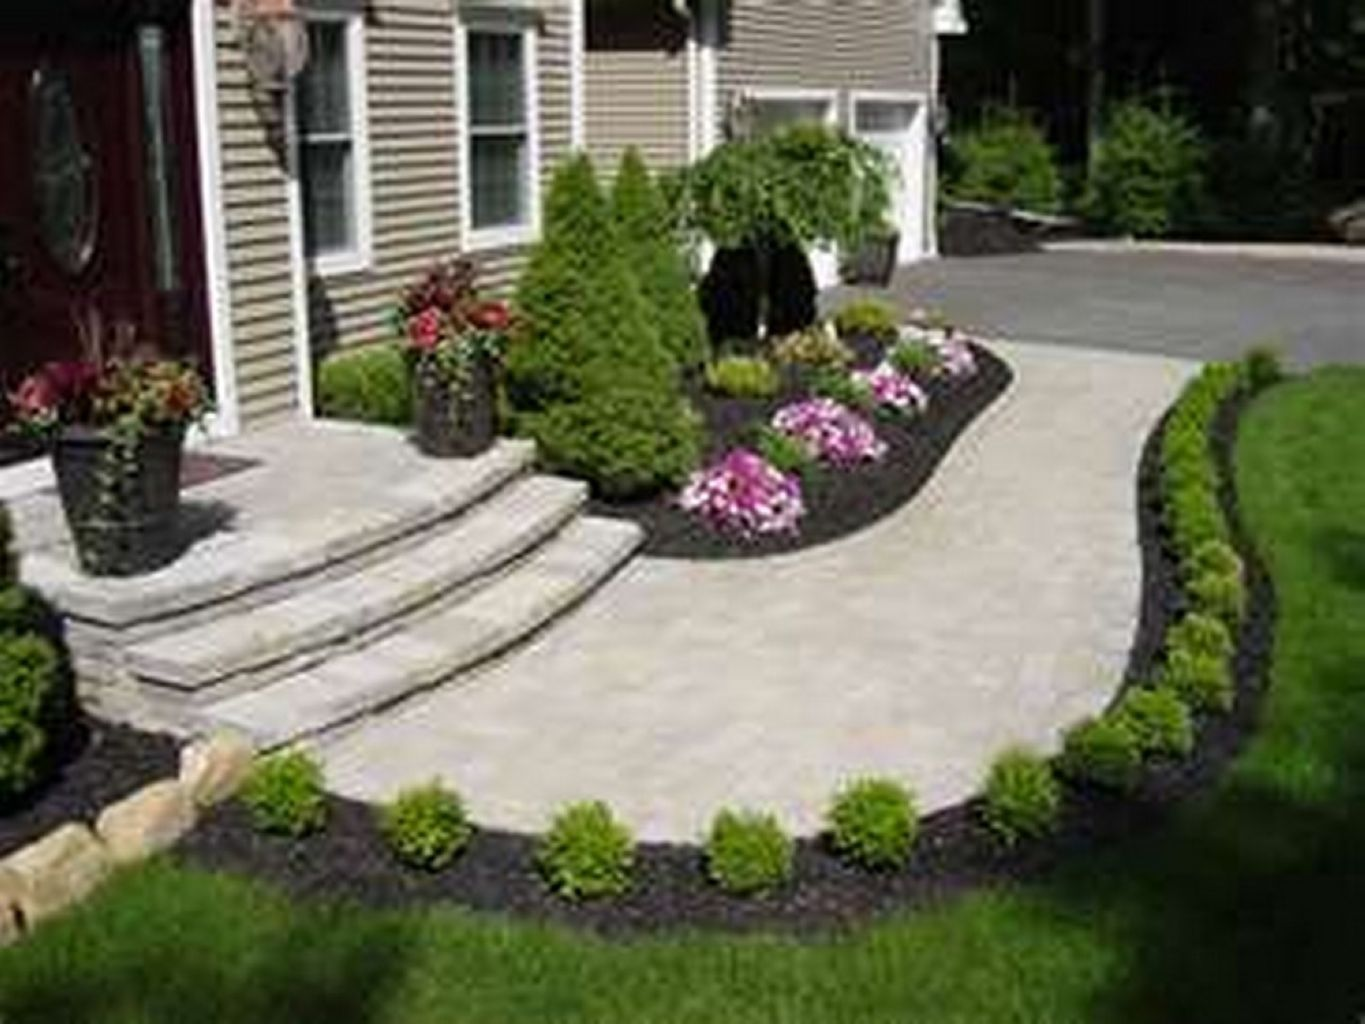 pin by joy landscaping on landscaping ideas | pinterest | front yard